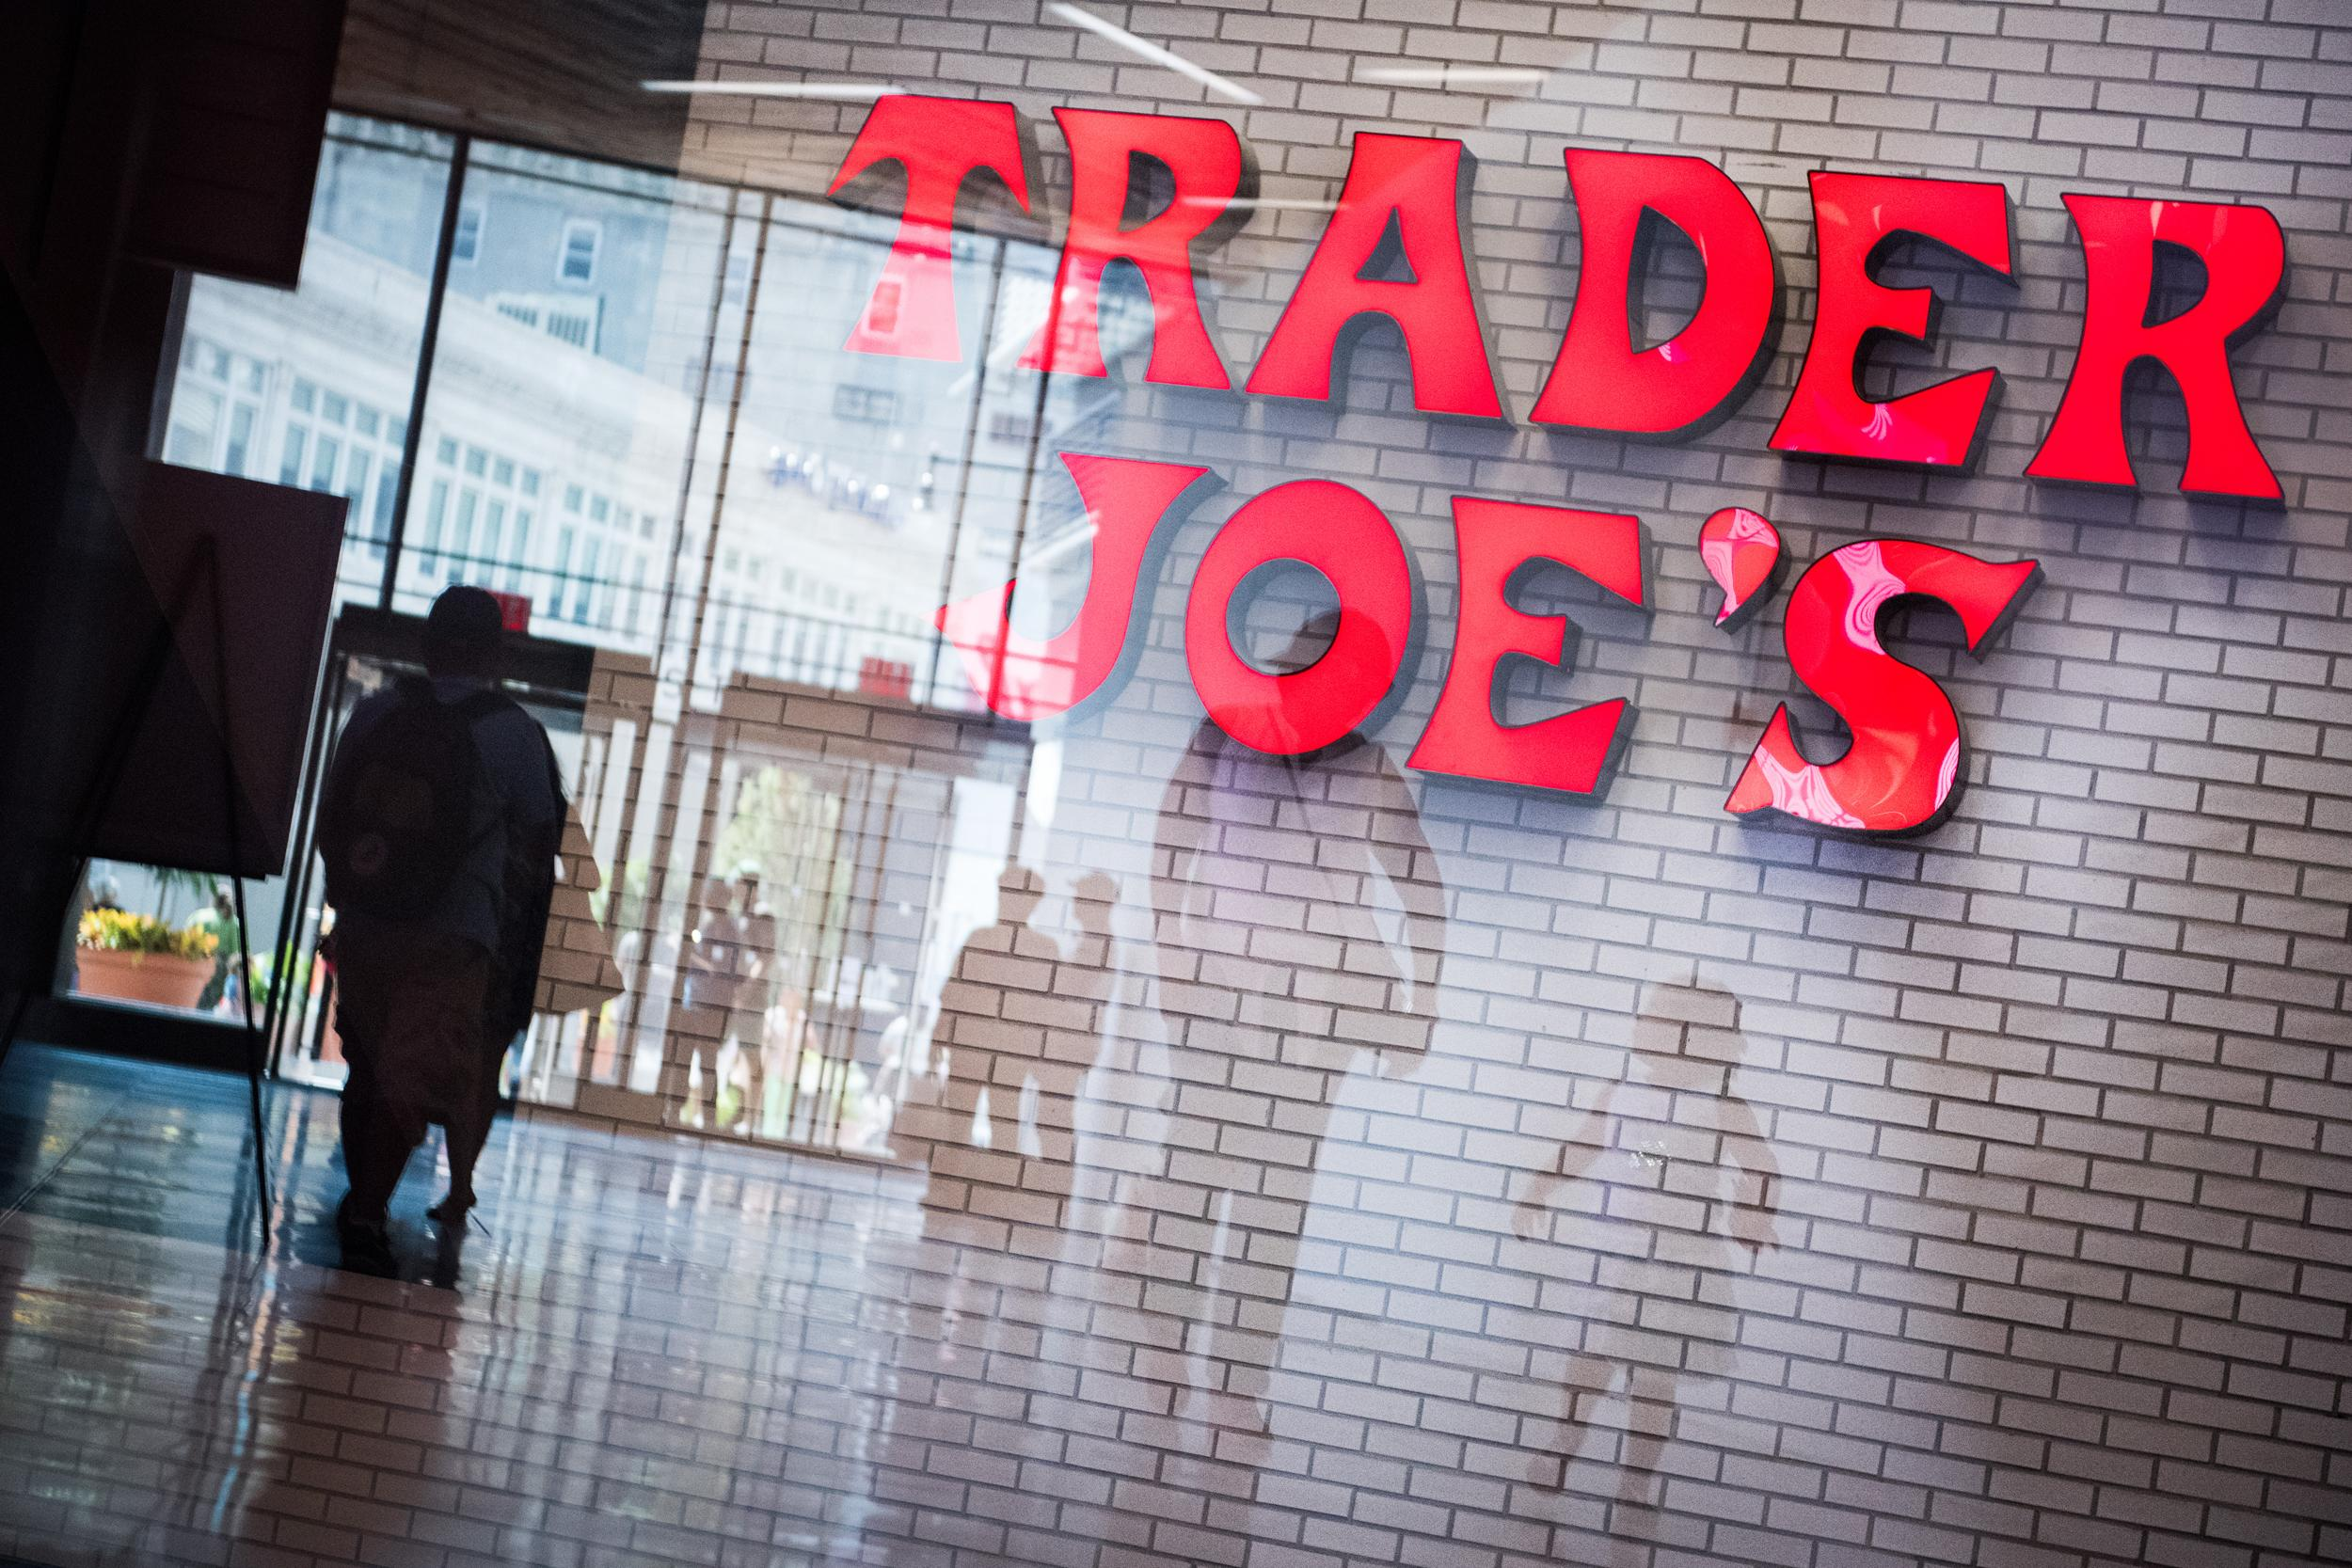 Trader Joe's workers in NYC assaulted by 2 men who refused to wear masks, police say